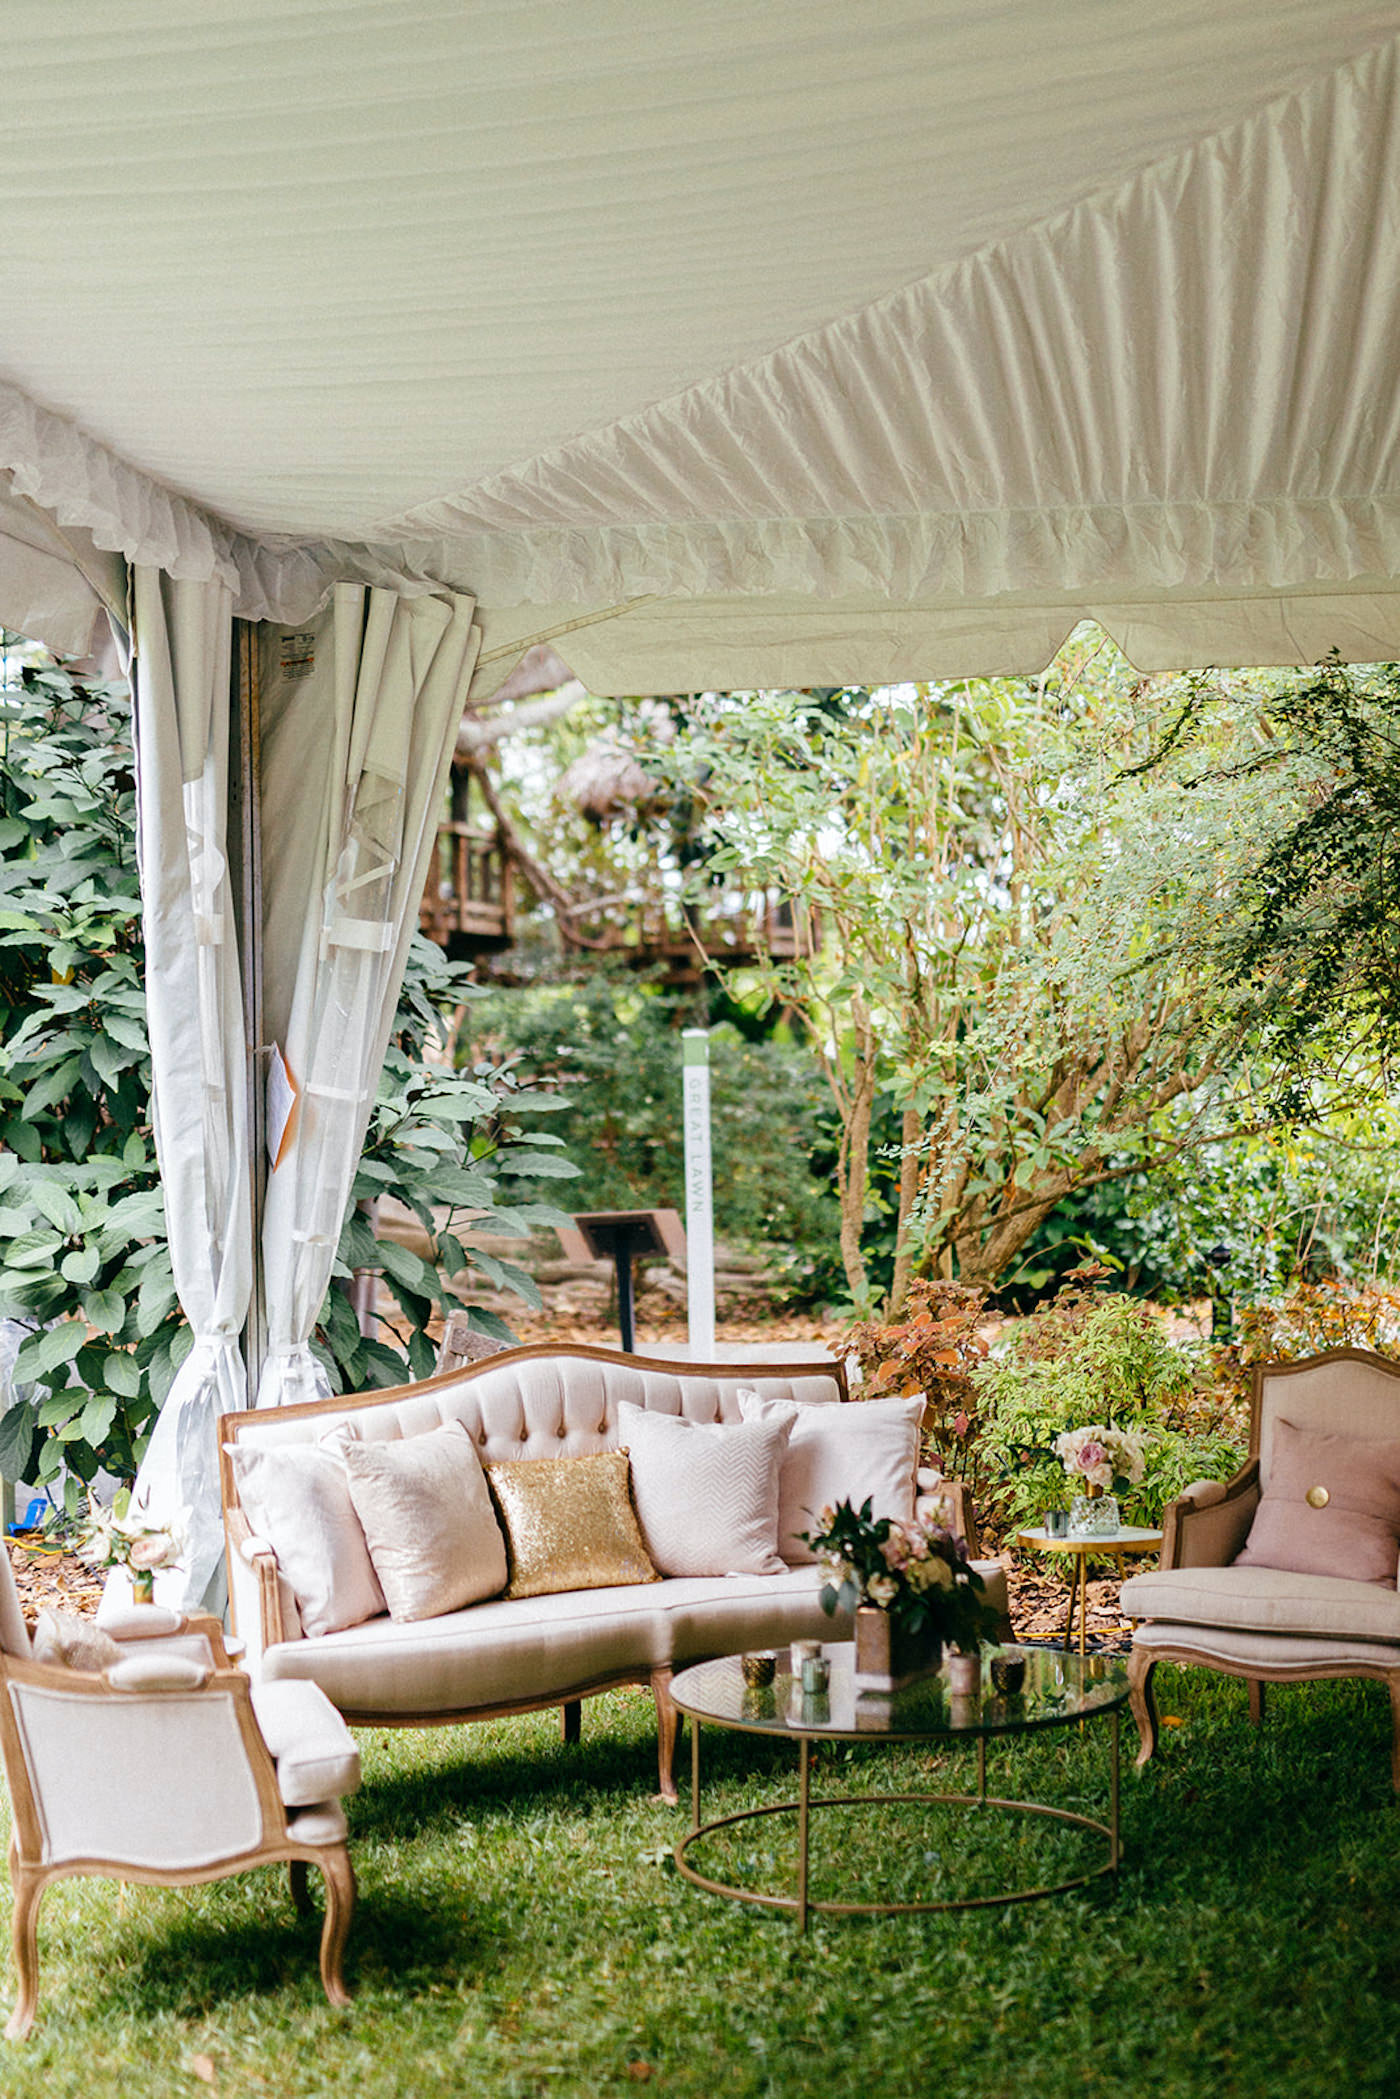 Romantic, Garden Inspired Wedding Reception Decor In Tented Outdoor Florida Wedding, Luxurious Lounge Chairs with Blush Pink Velvet, Elegant Arm Chairs, Gold Sequined Pillow Accents, Modern and Vintage Furniture   Sarasota Wedding Planner NK Weddings